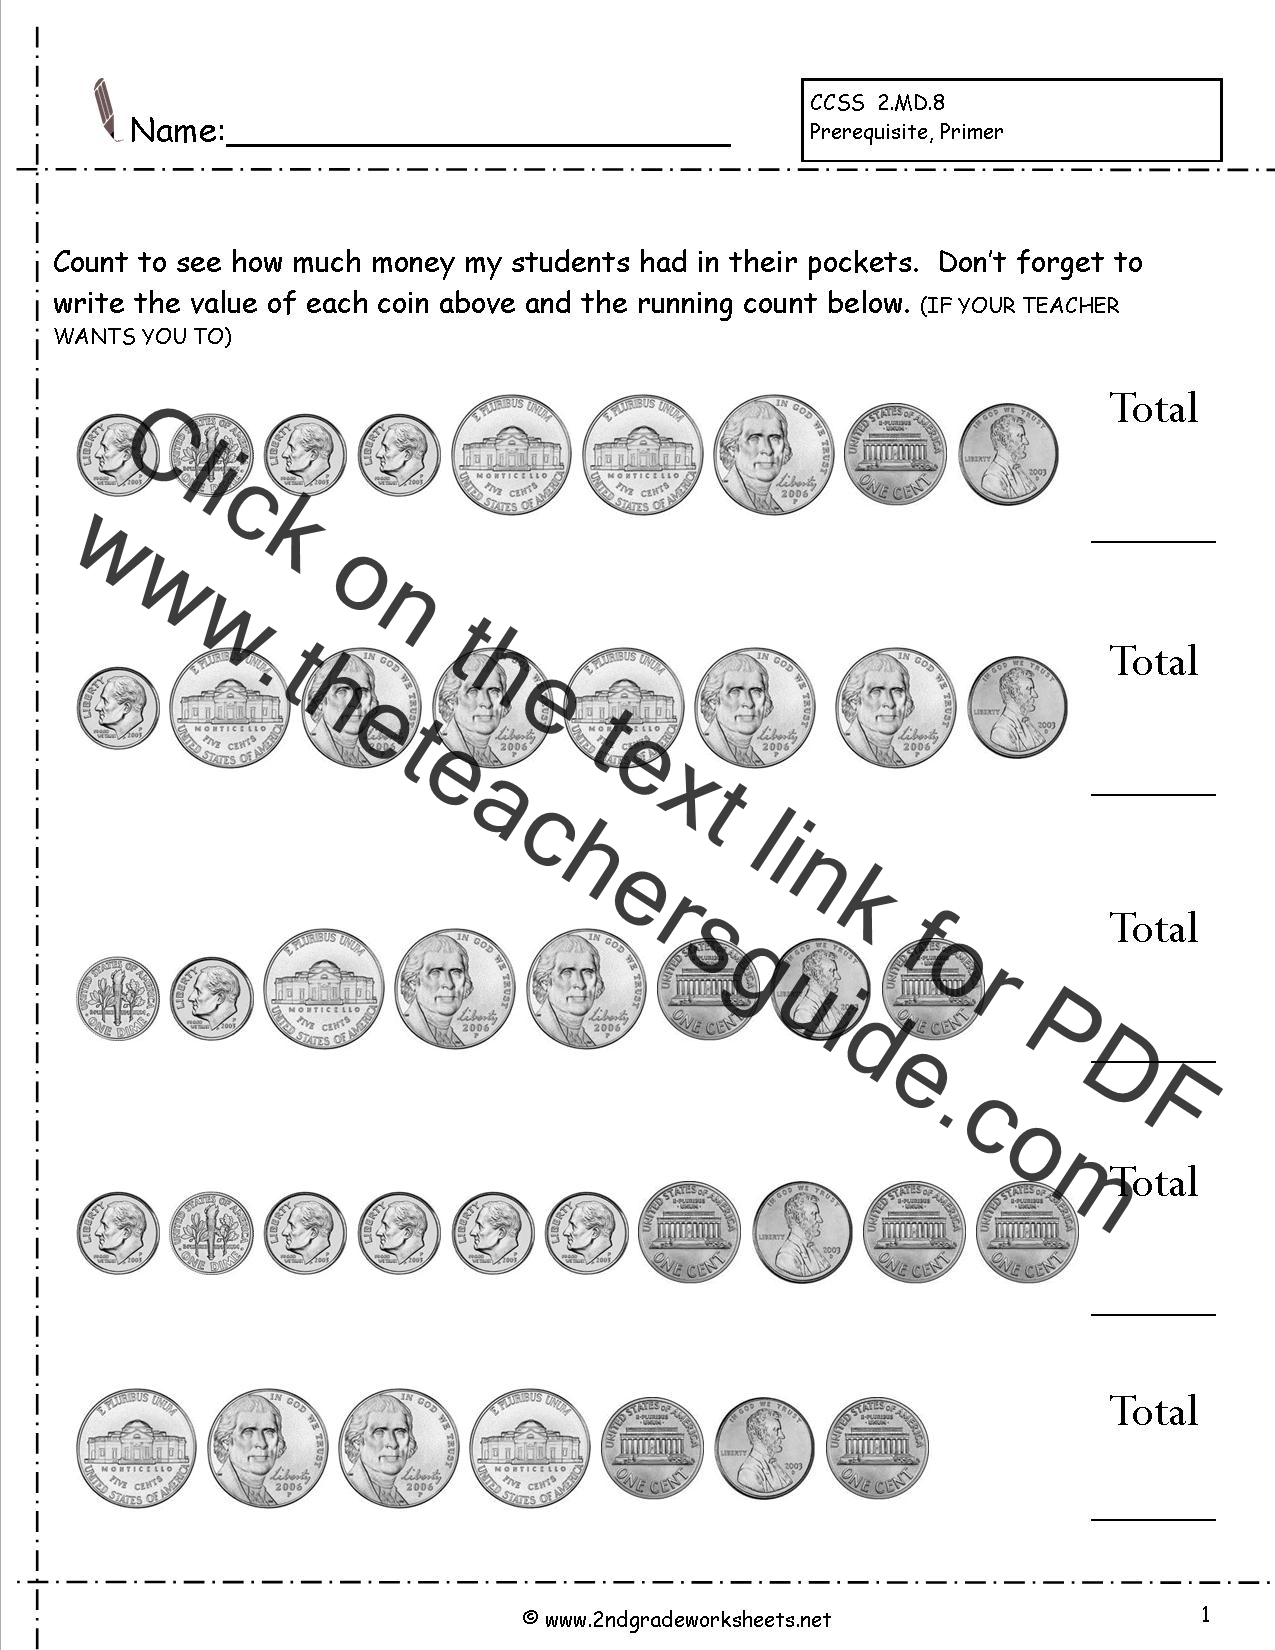 Counting Coins and Money Worksheets and Printouts – Counting Coins Worksheet